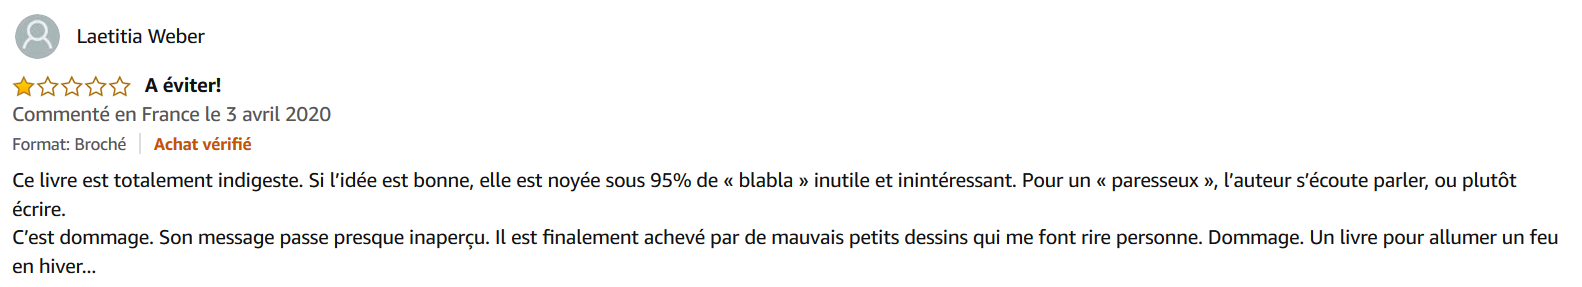 2020-04-03_15h40_24 commentaire.png